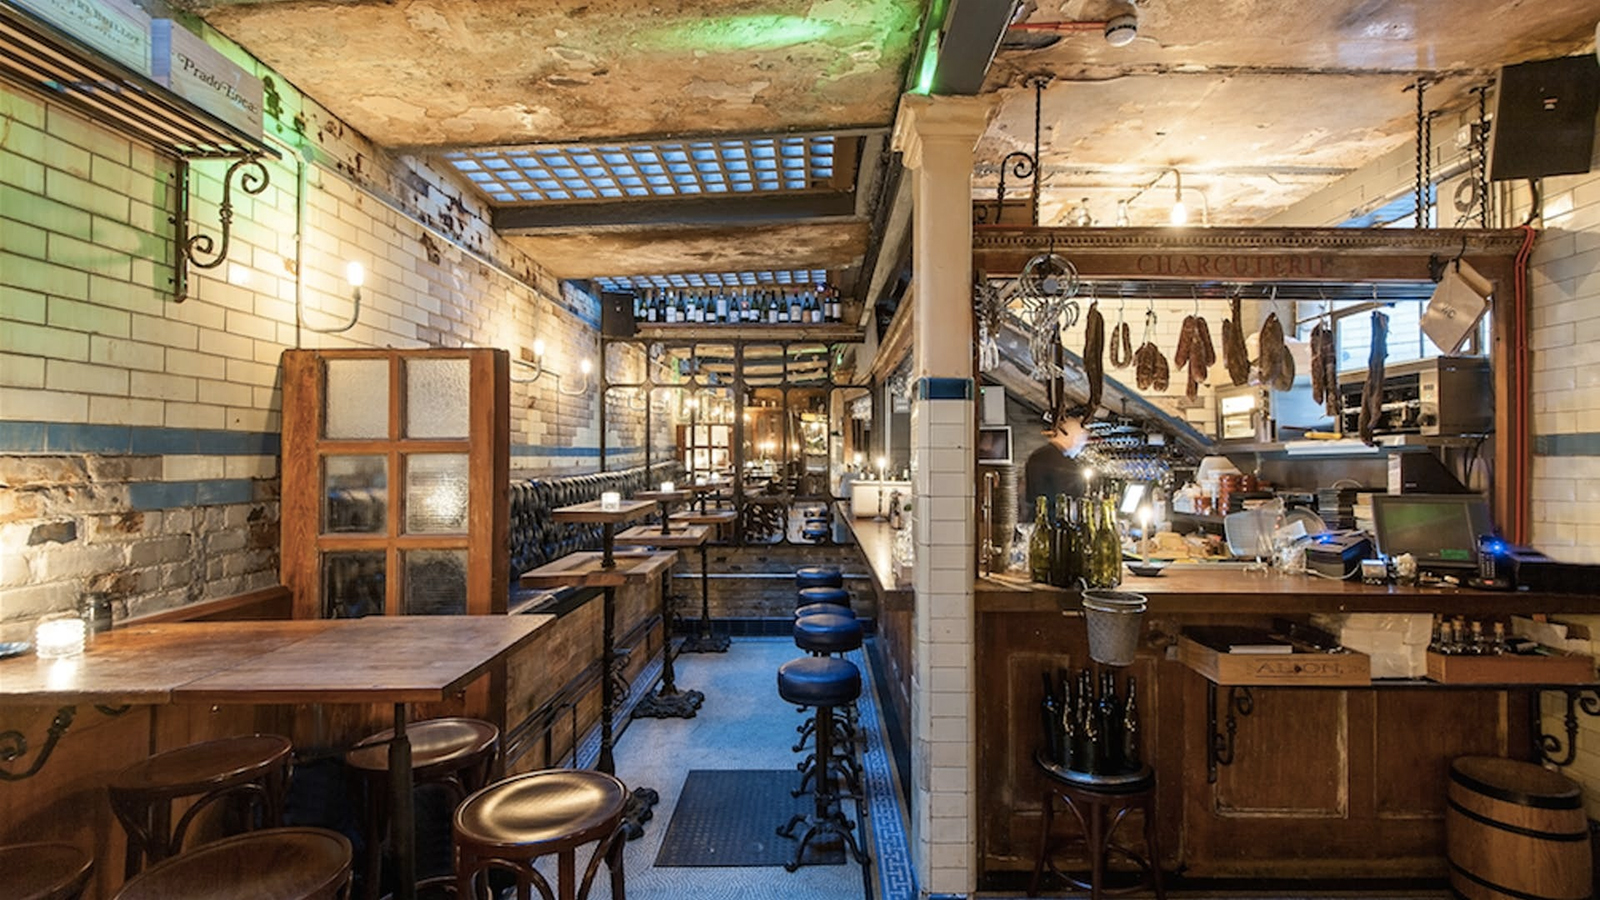 WC Clapham – a London restaurant in a former public lavatory